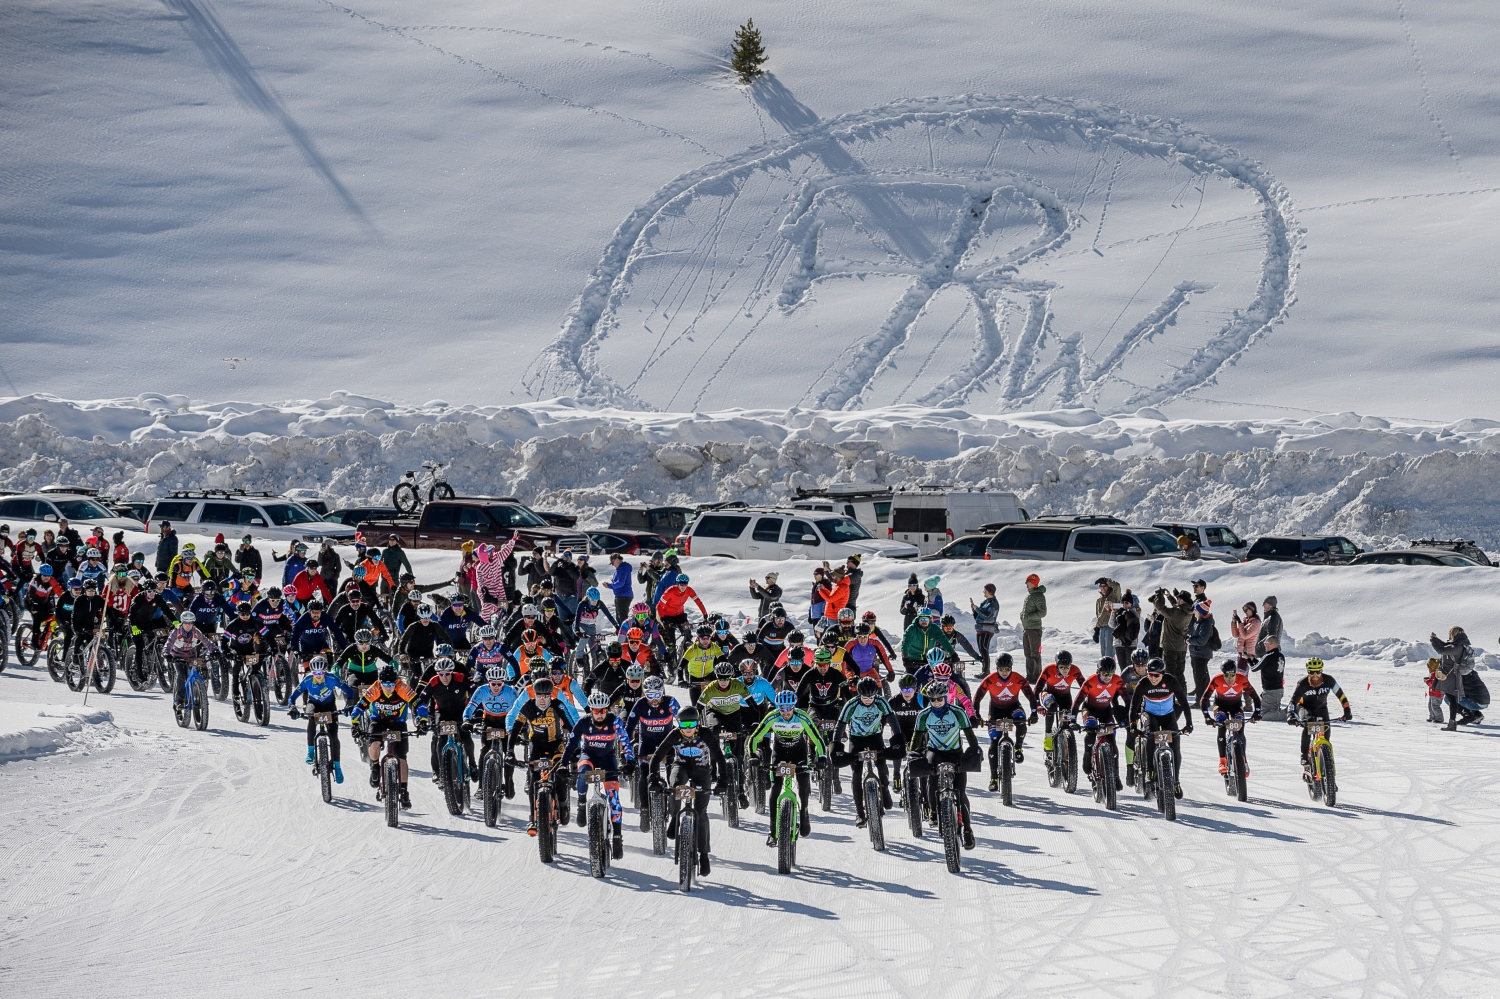 Your author (dead center in the back wearing red jersey and blue helmet) used the 2020 Fat Bike World Championships - and the lead-up to the event - to test out some of the latest cold weather cycling gear and apparel. Photo by Robby Lloyd/Lucid Images